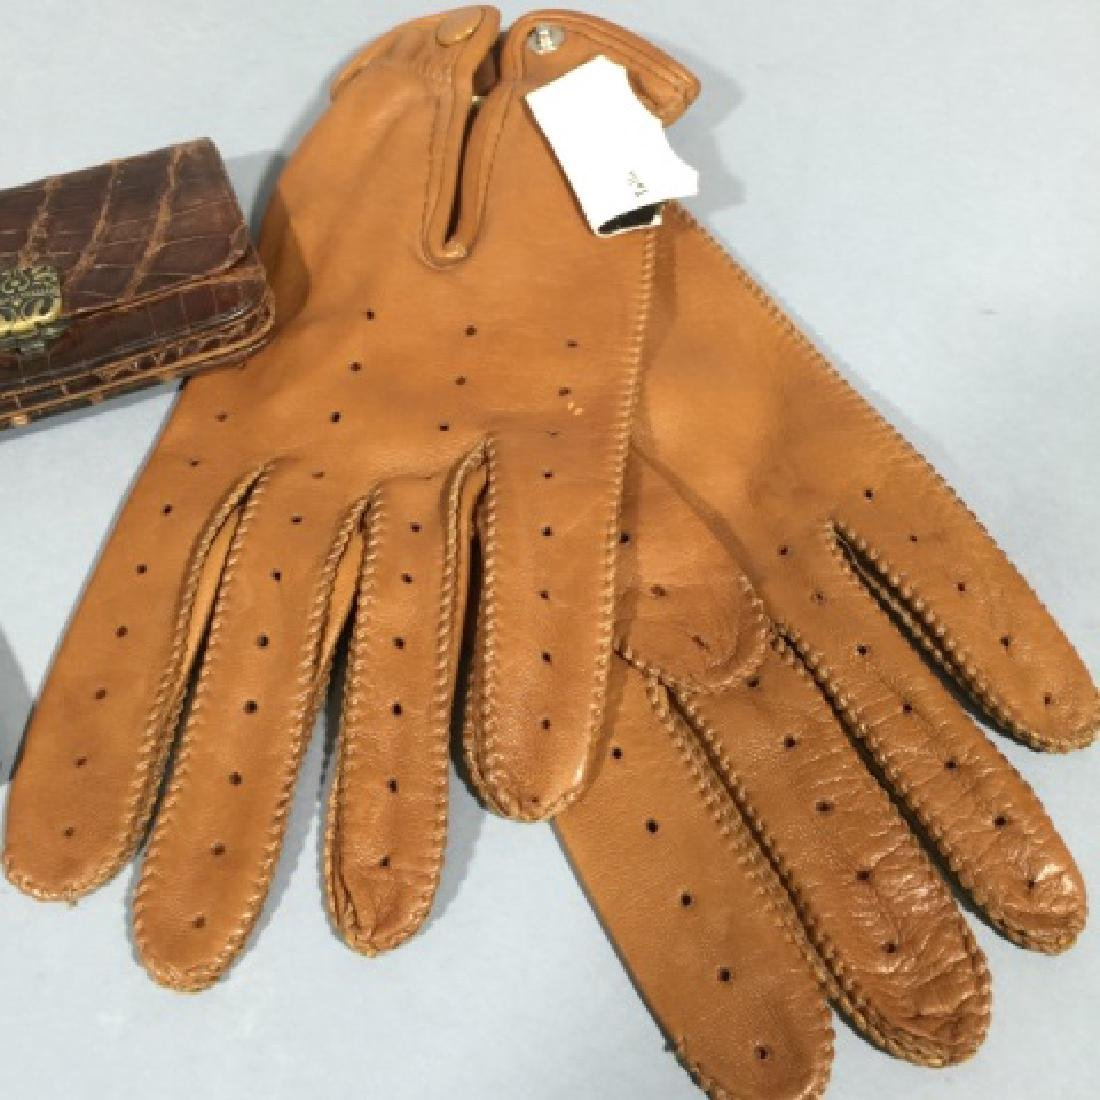 Group Vintage Leather Personal Items Wallet Gloves - 3